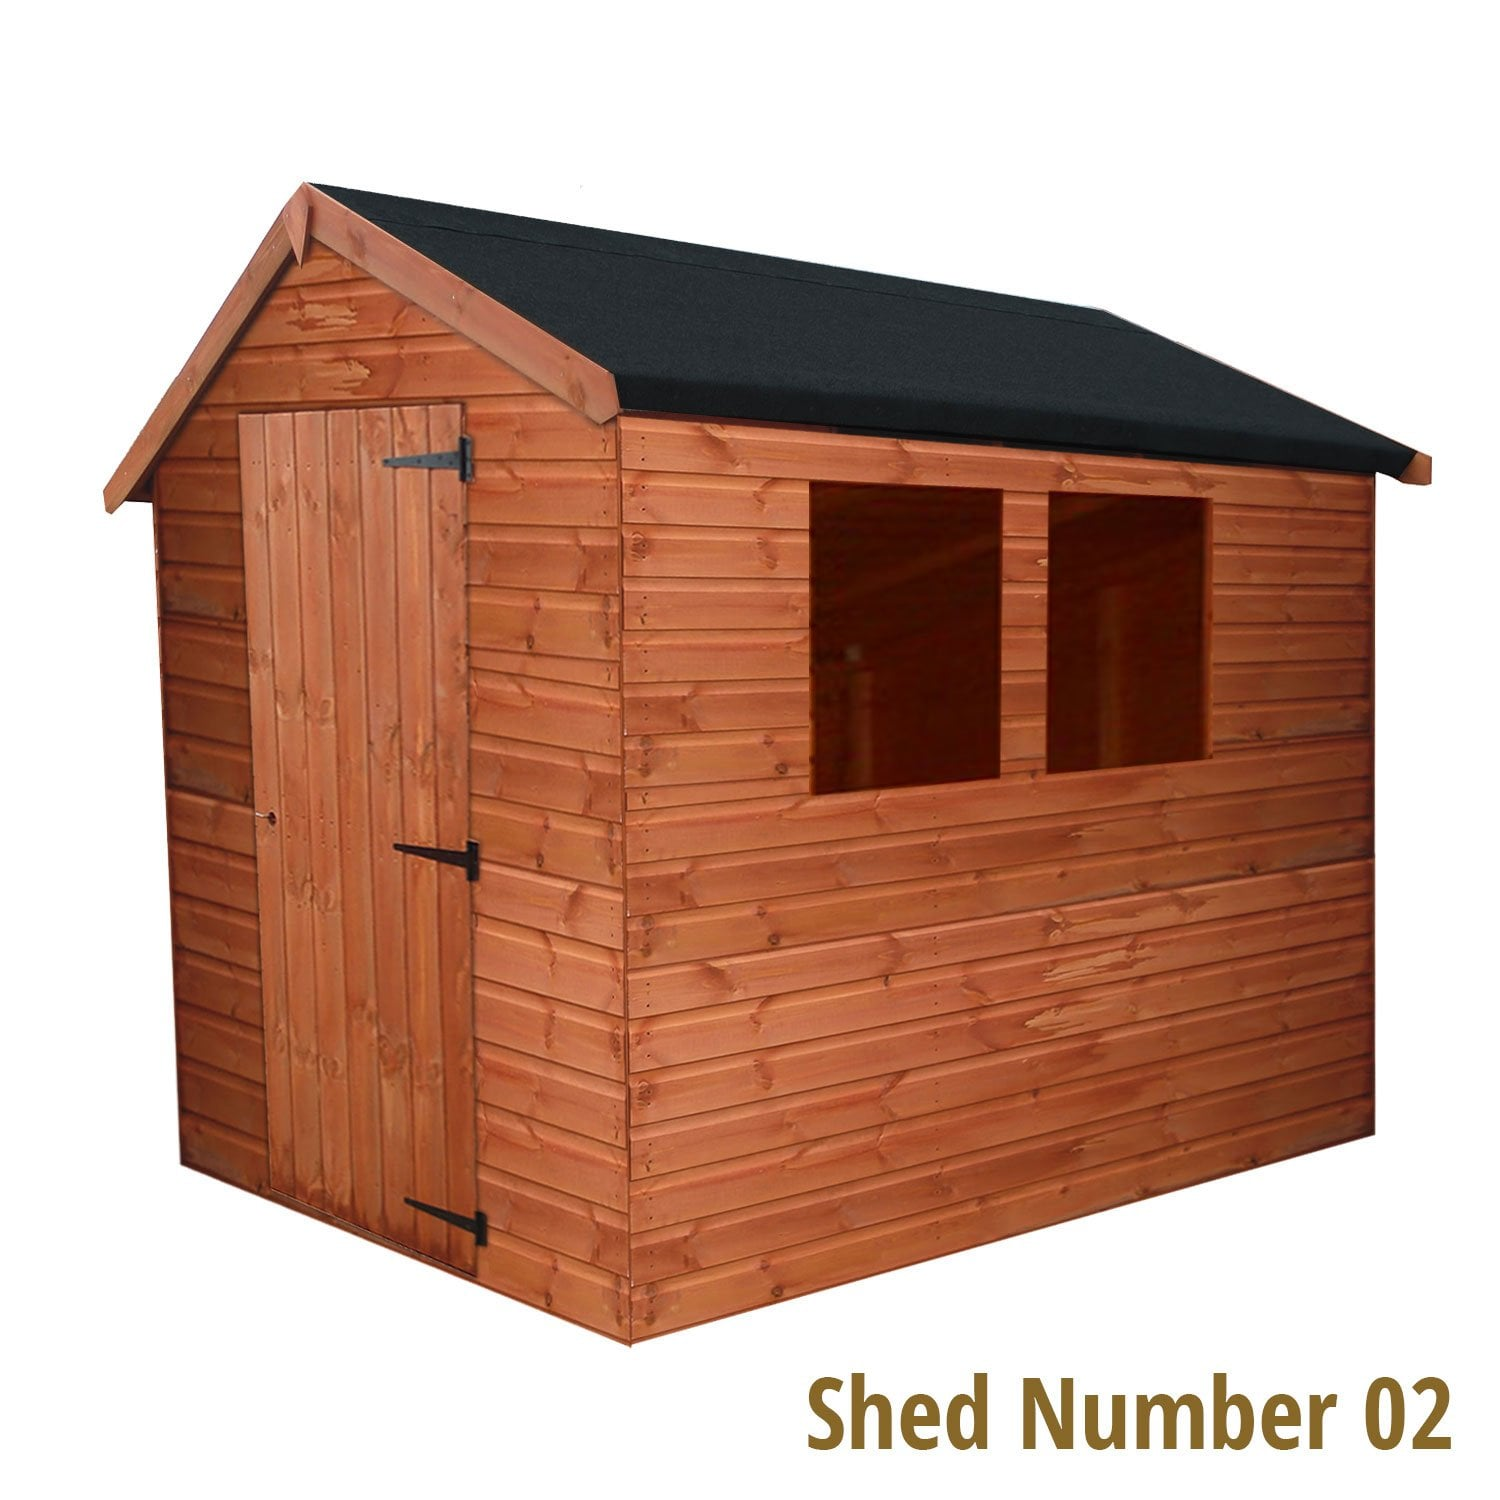 up outdoor door the roll garden side have shed sheds in garage large could pin big back room